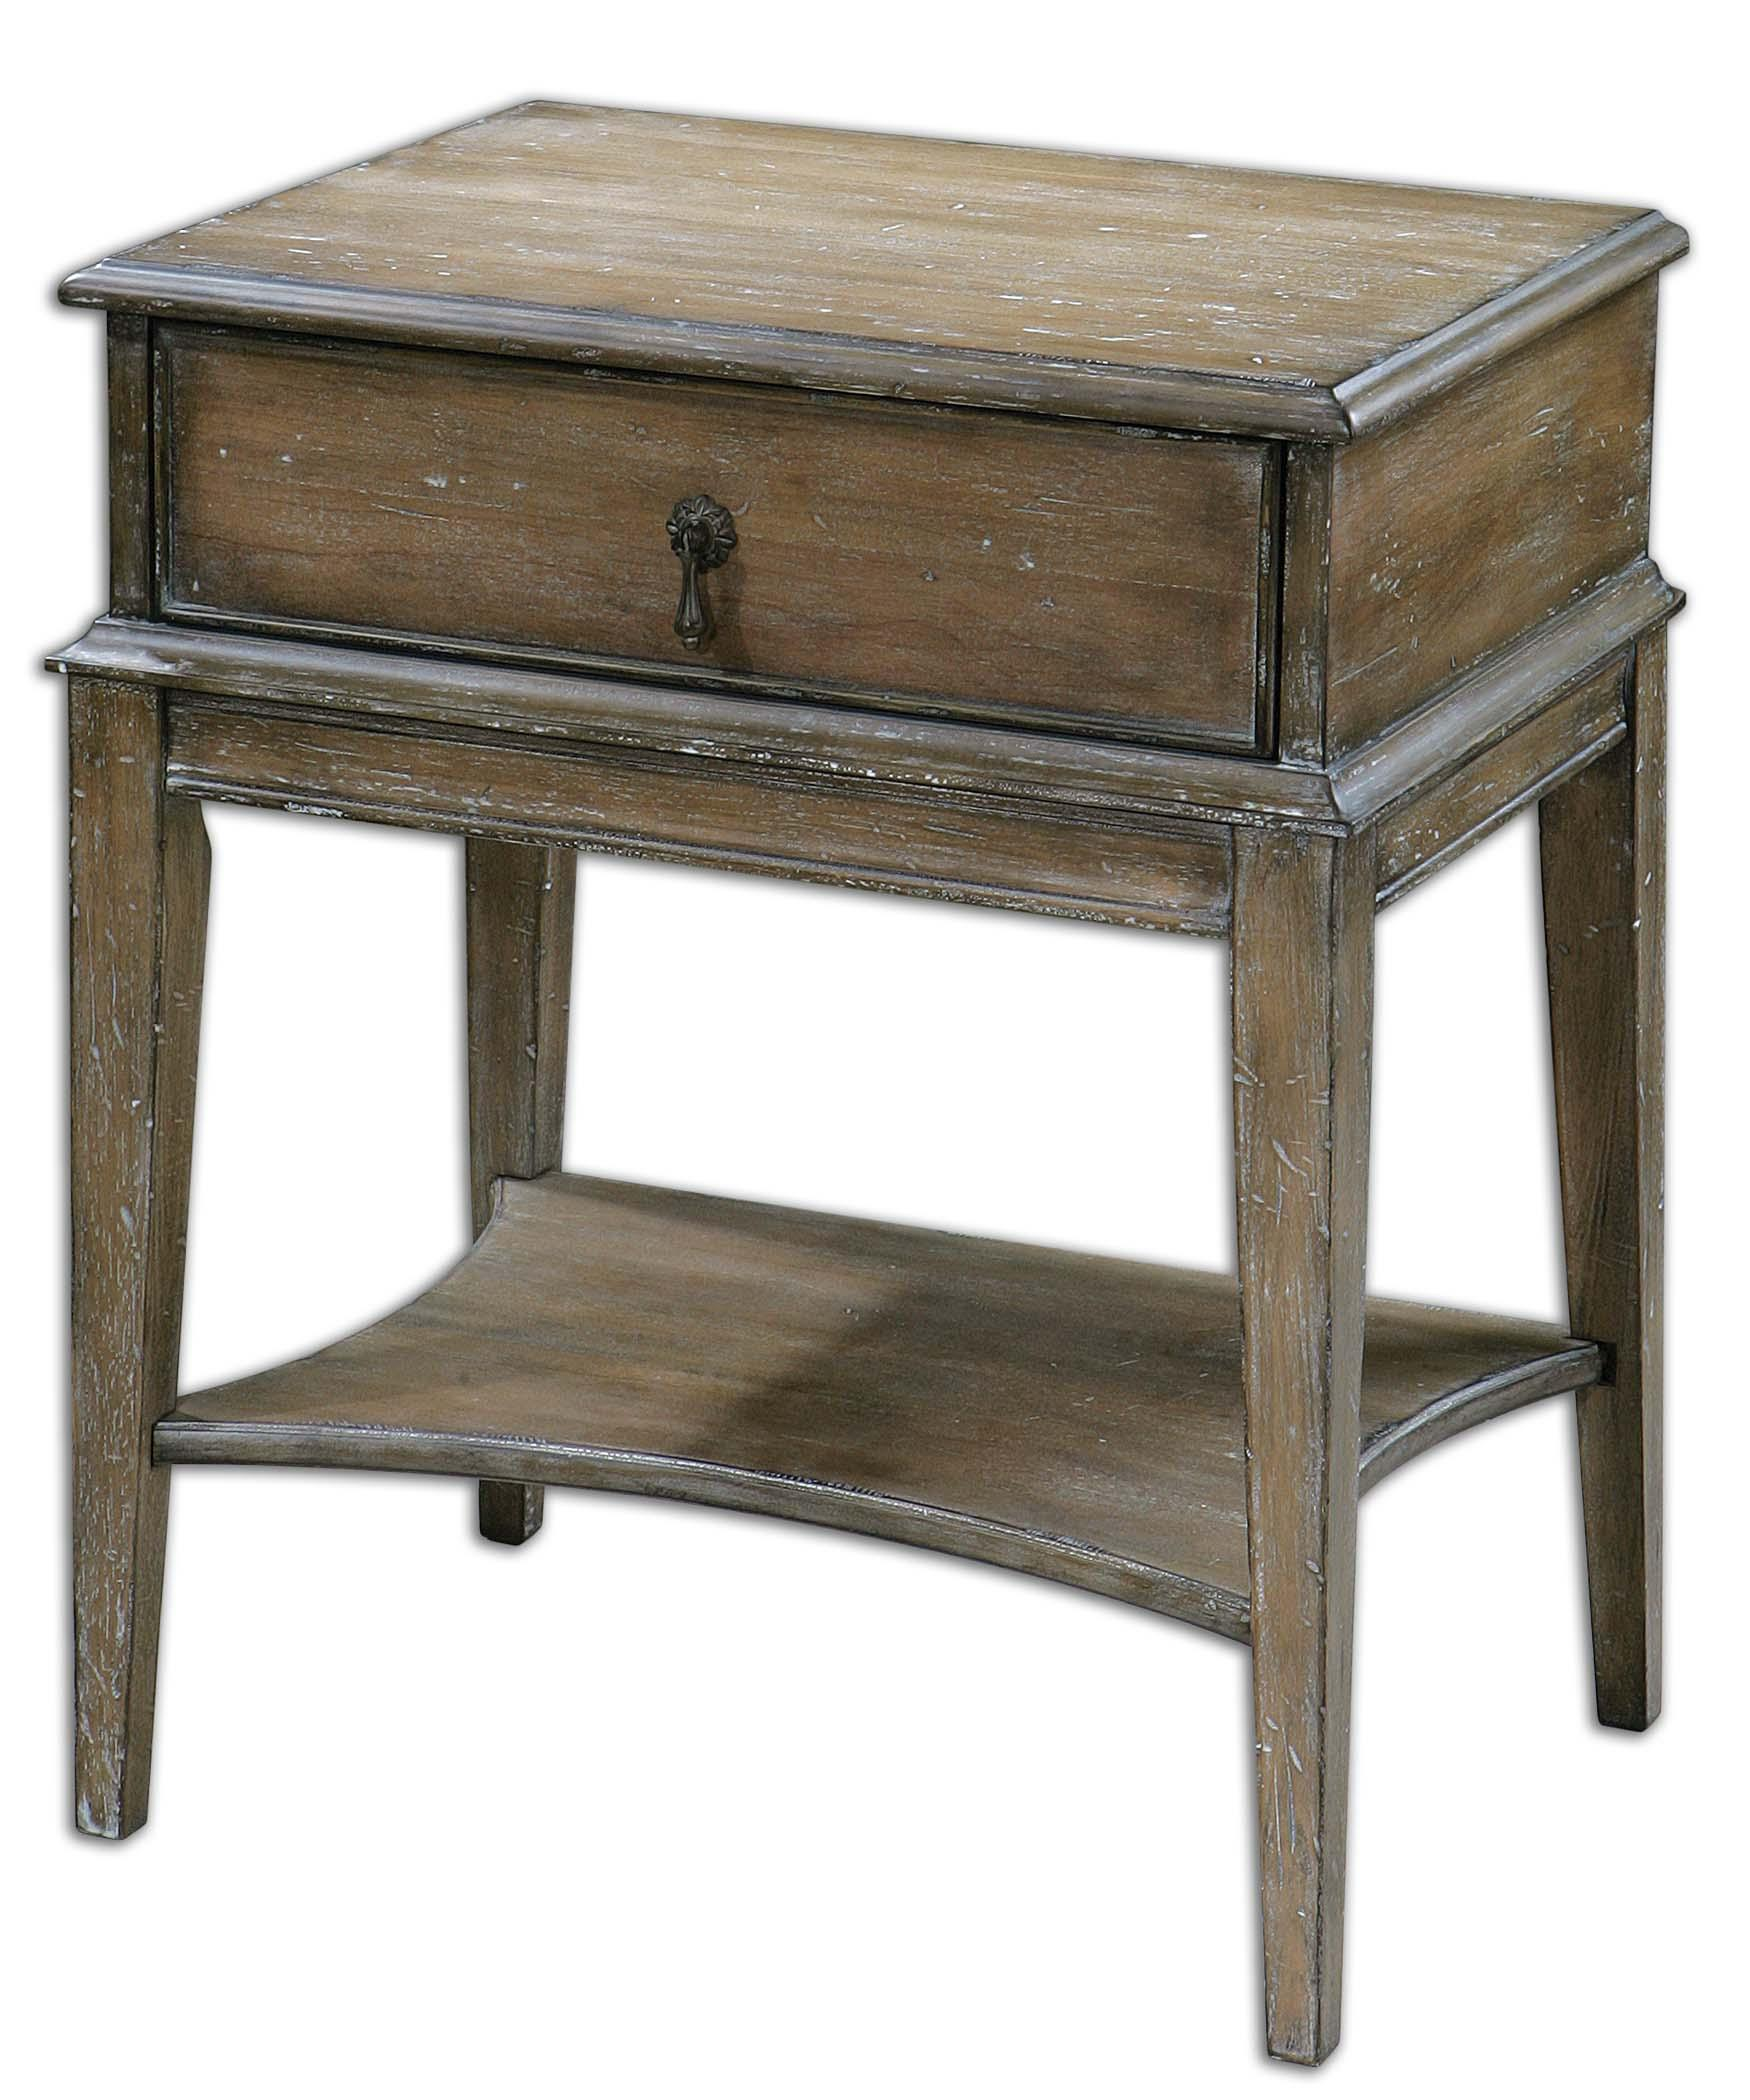 Uttermost Accent Furniture Hanford Weathered Accent Table - Item Number: 24312